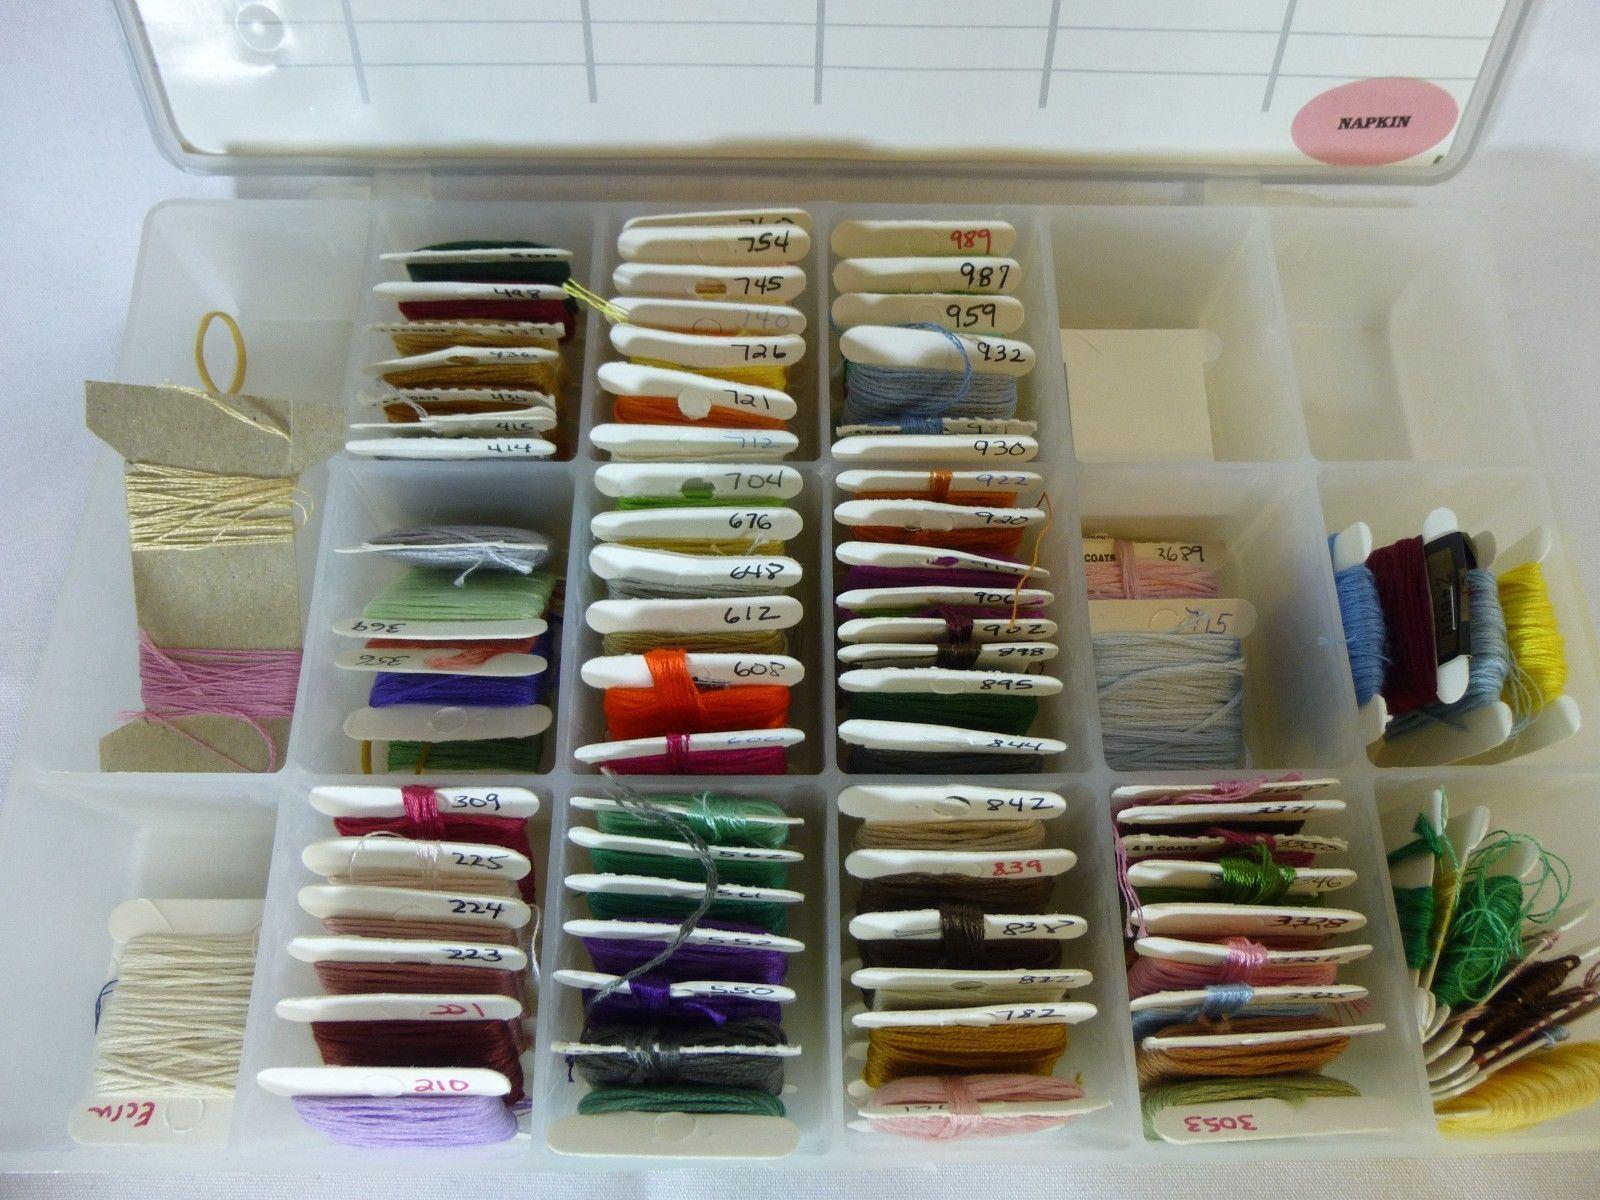 70 Cards Assorted Embroidery Floss In Darice Plastic